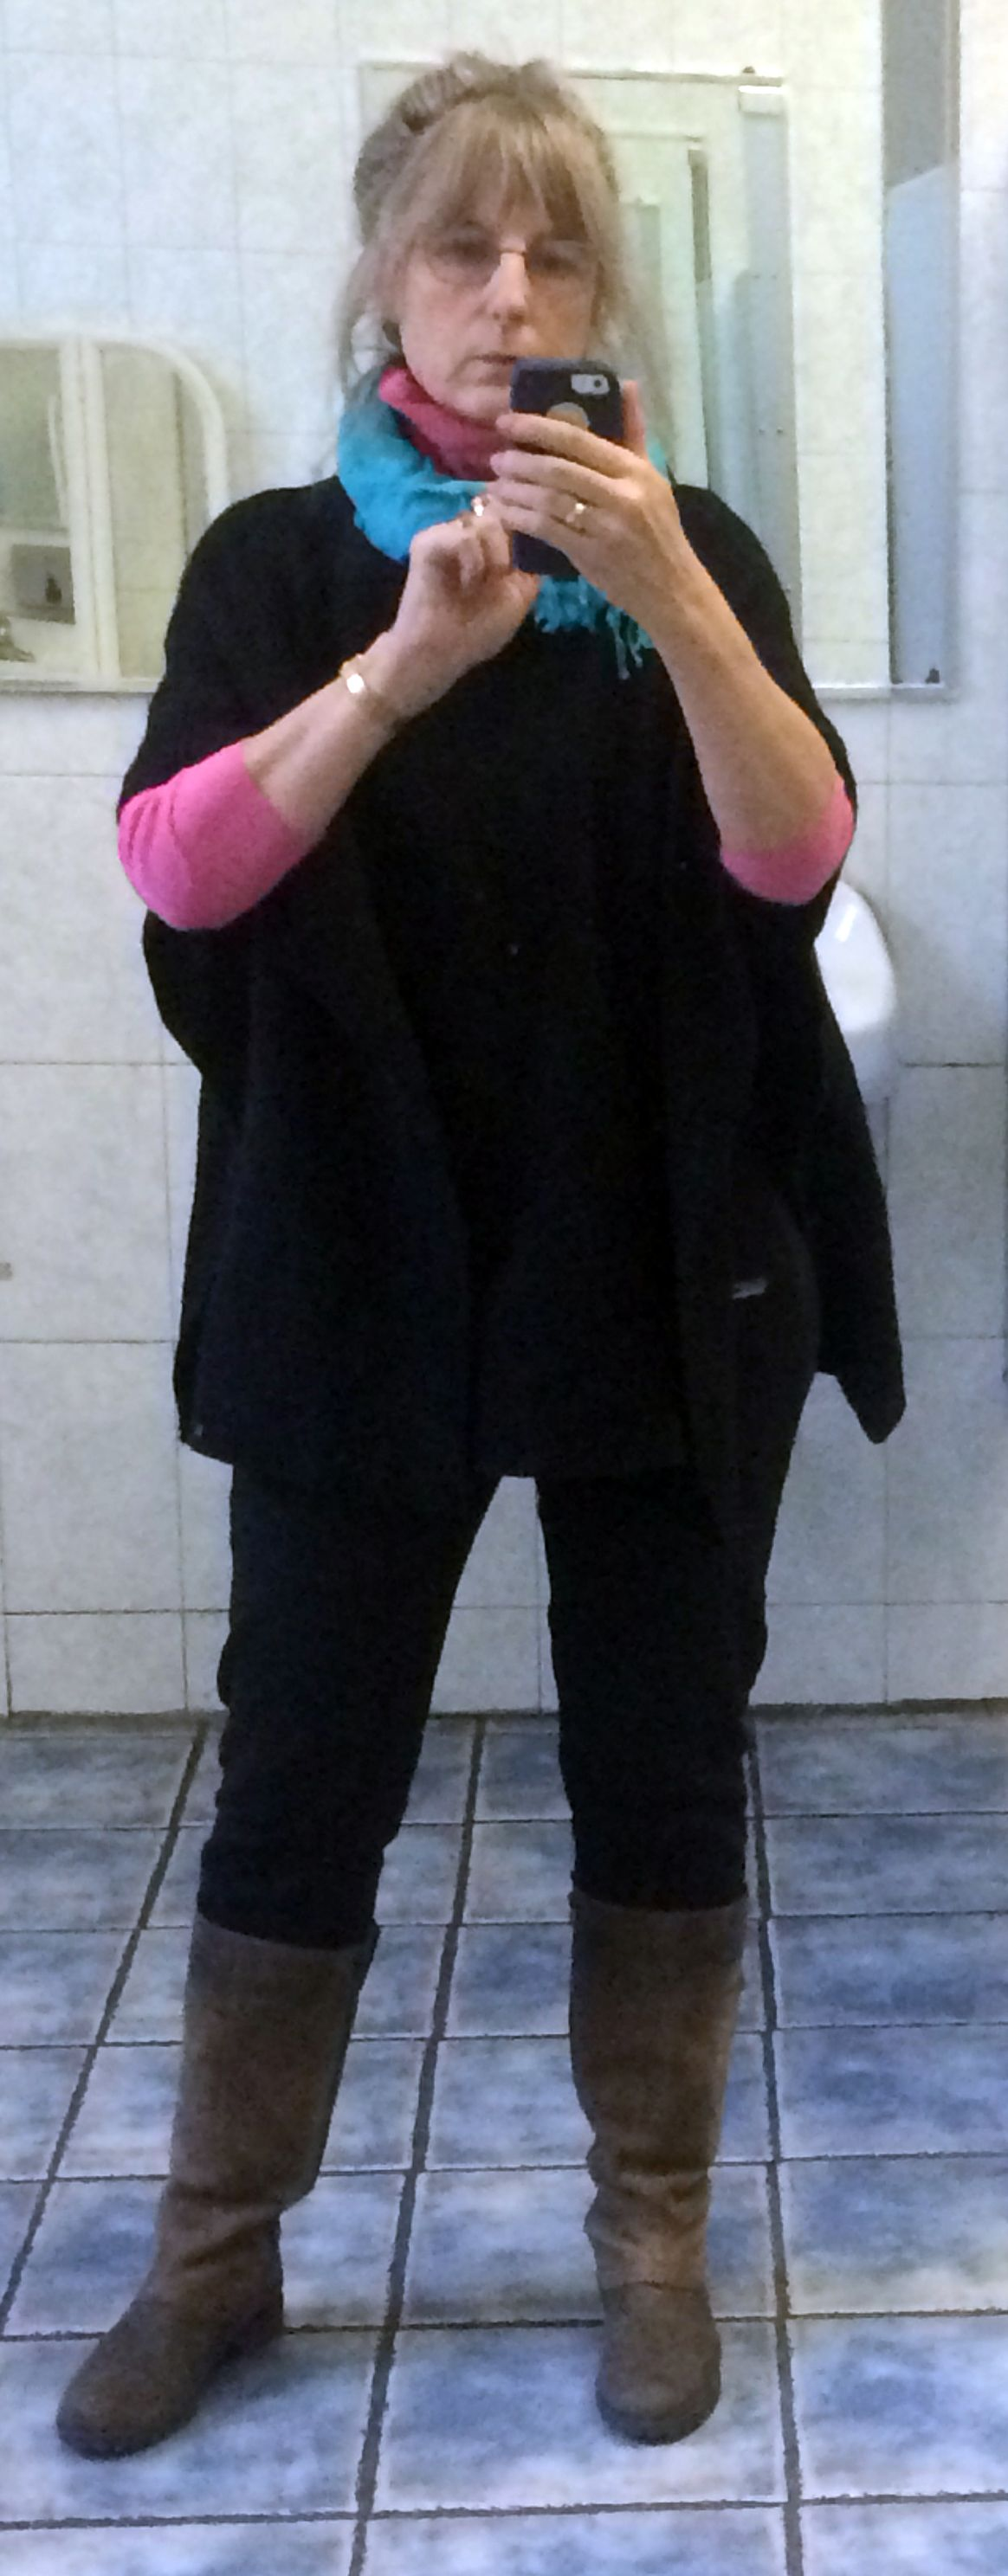 Work outfit, work morning, work loo. Same 90s Patigonia pants as other pic, pink turtleneck from 80s, turquoise 90s pashima tied as infinity scarf, Clark boots, gortex-lined and -- O' the middle-aged infamity--sweater J Jill, on sale, of course.